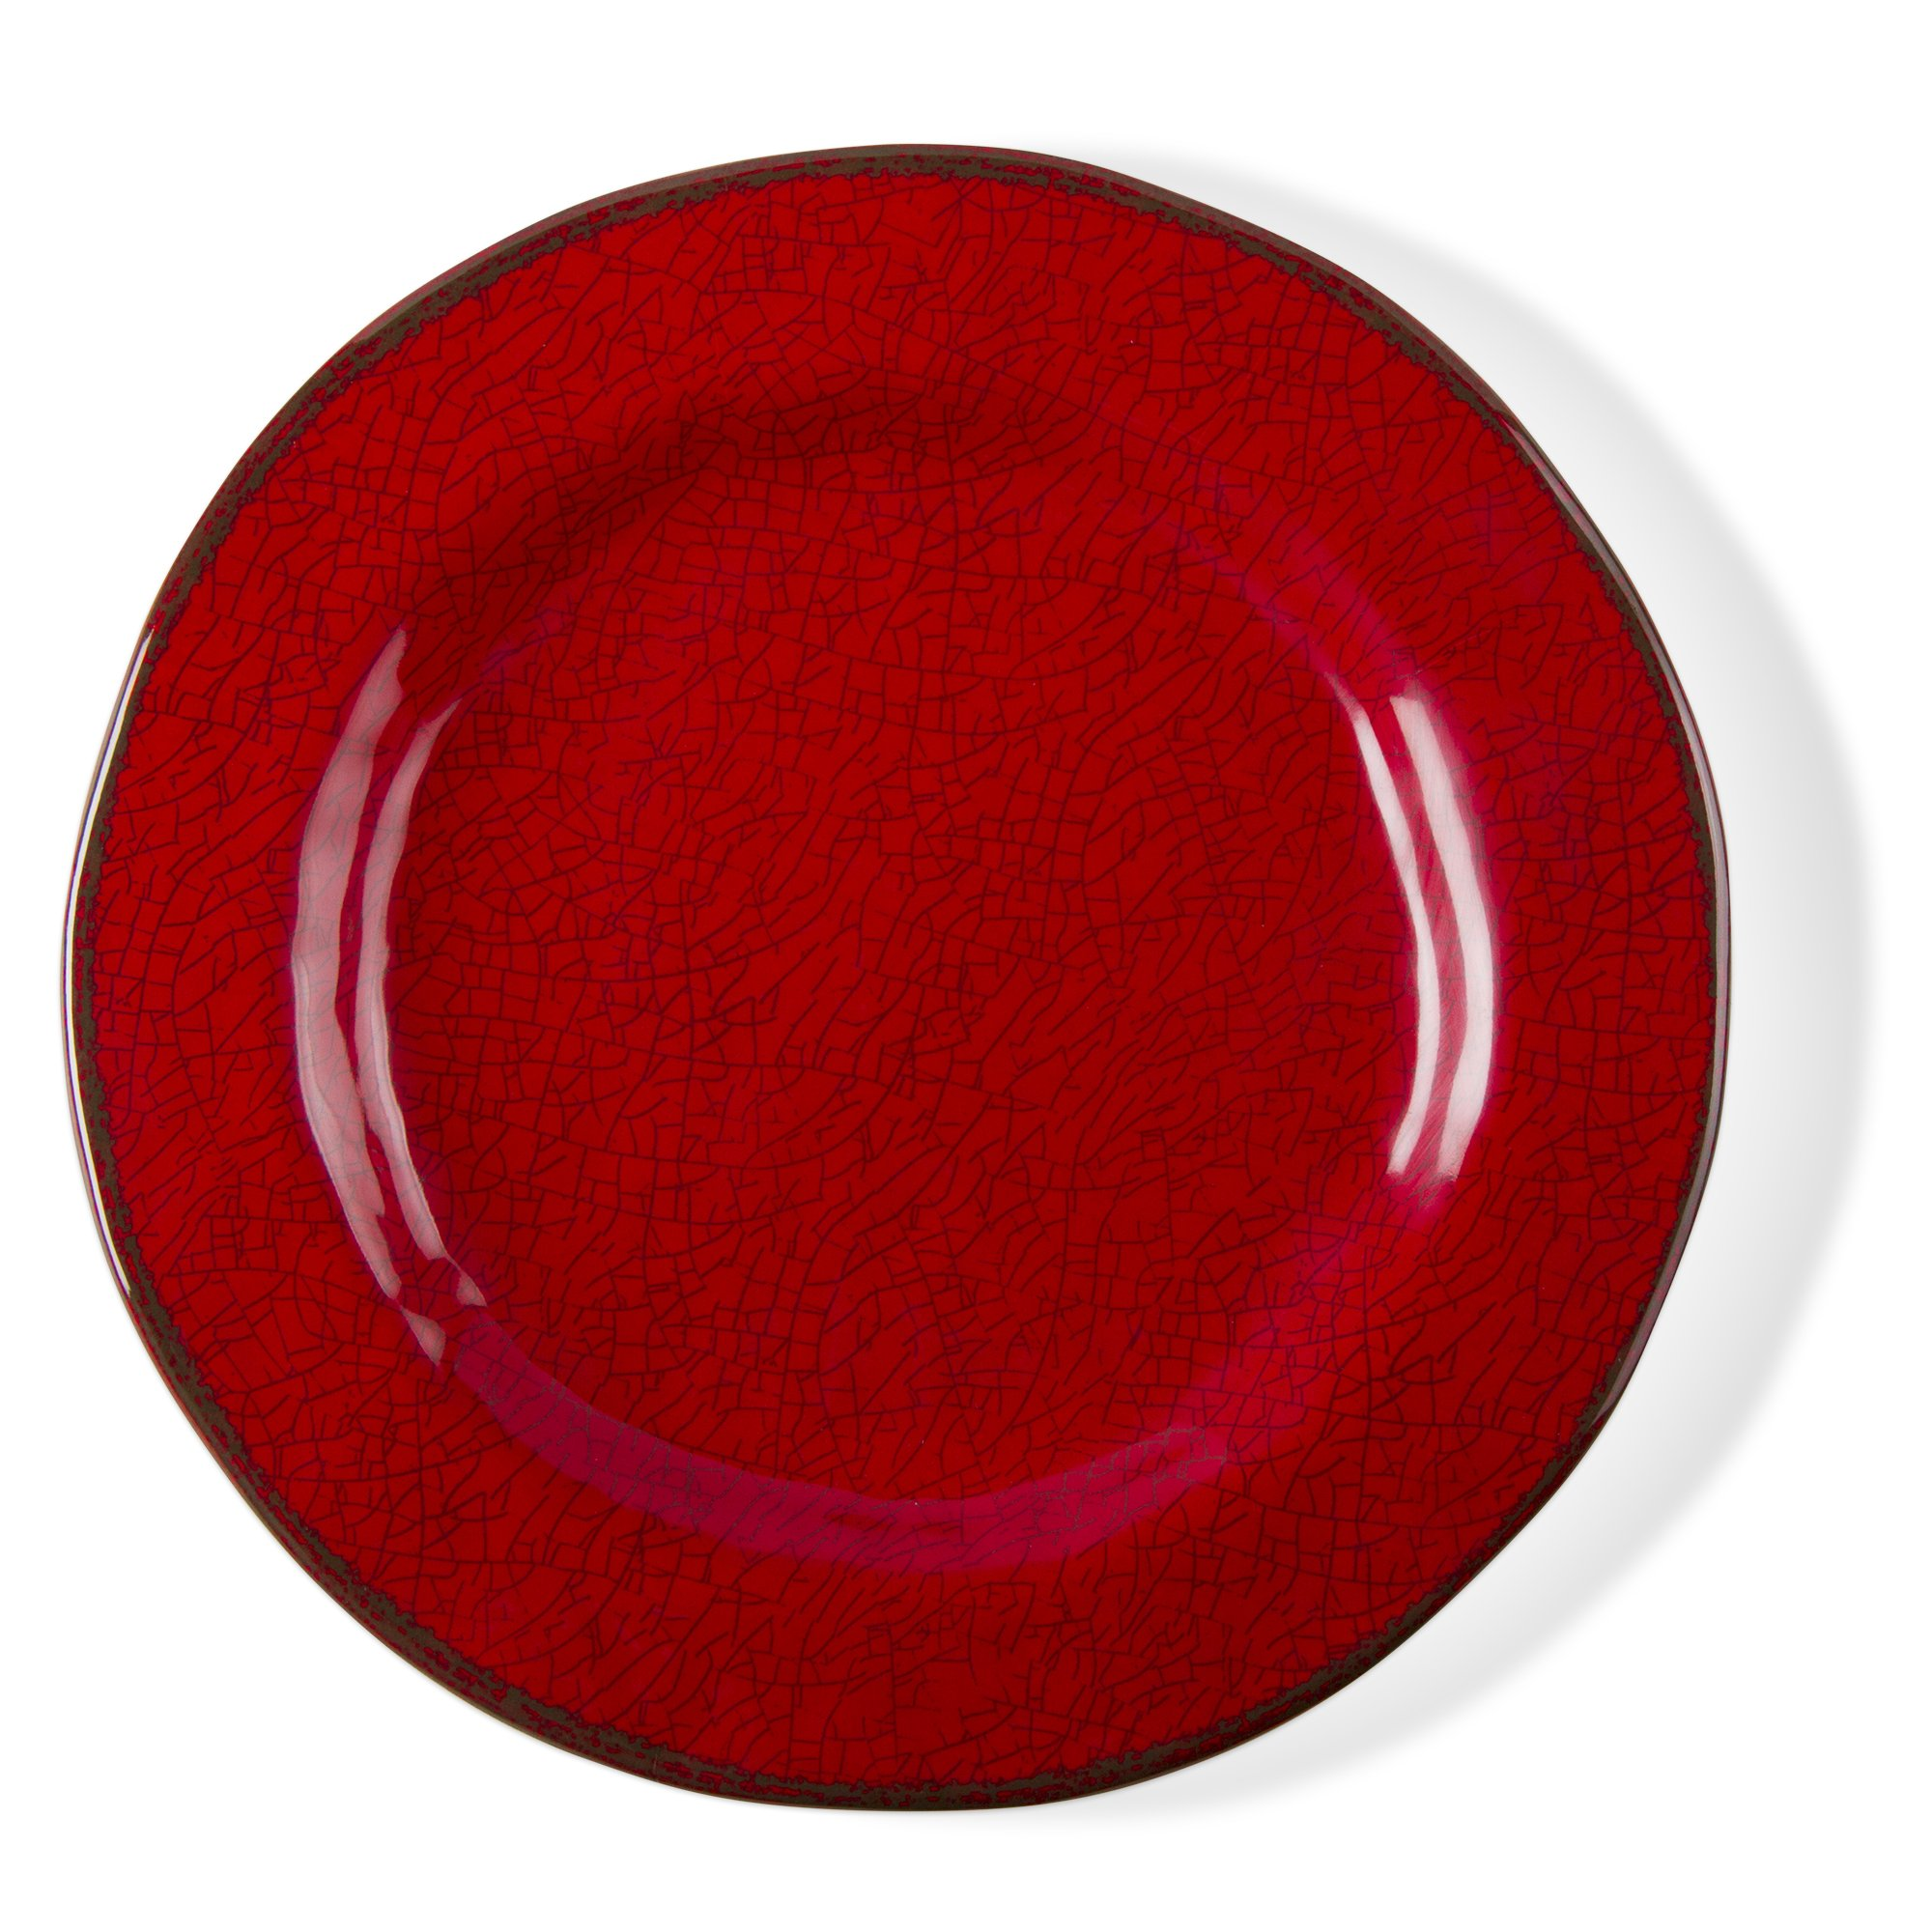 tag - Veranda Melamine Salad Plate, Durable, BPA-Free and Great for Outdoor or Casual Meals (Set Of 4) (4, Red) by tag